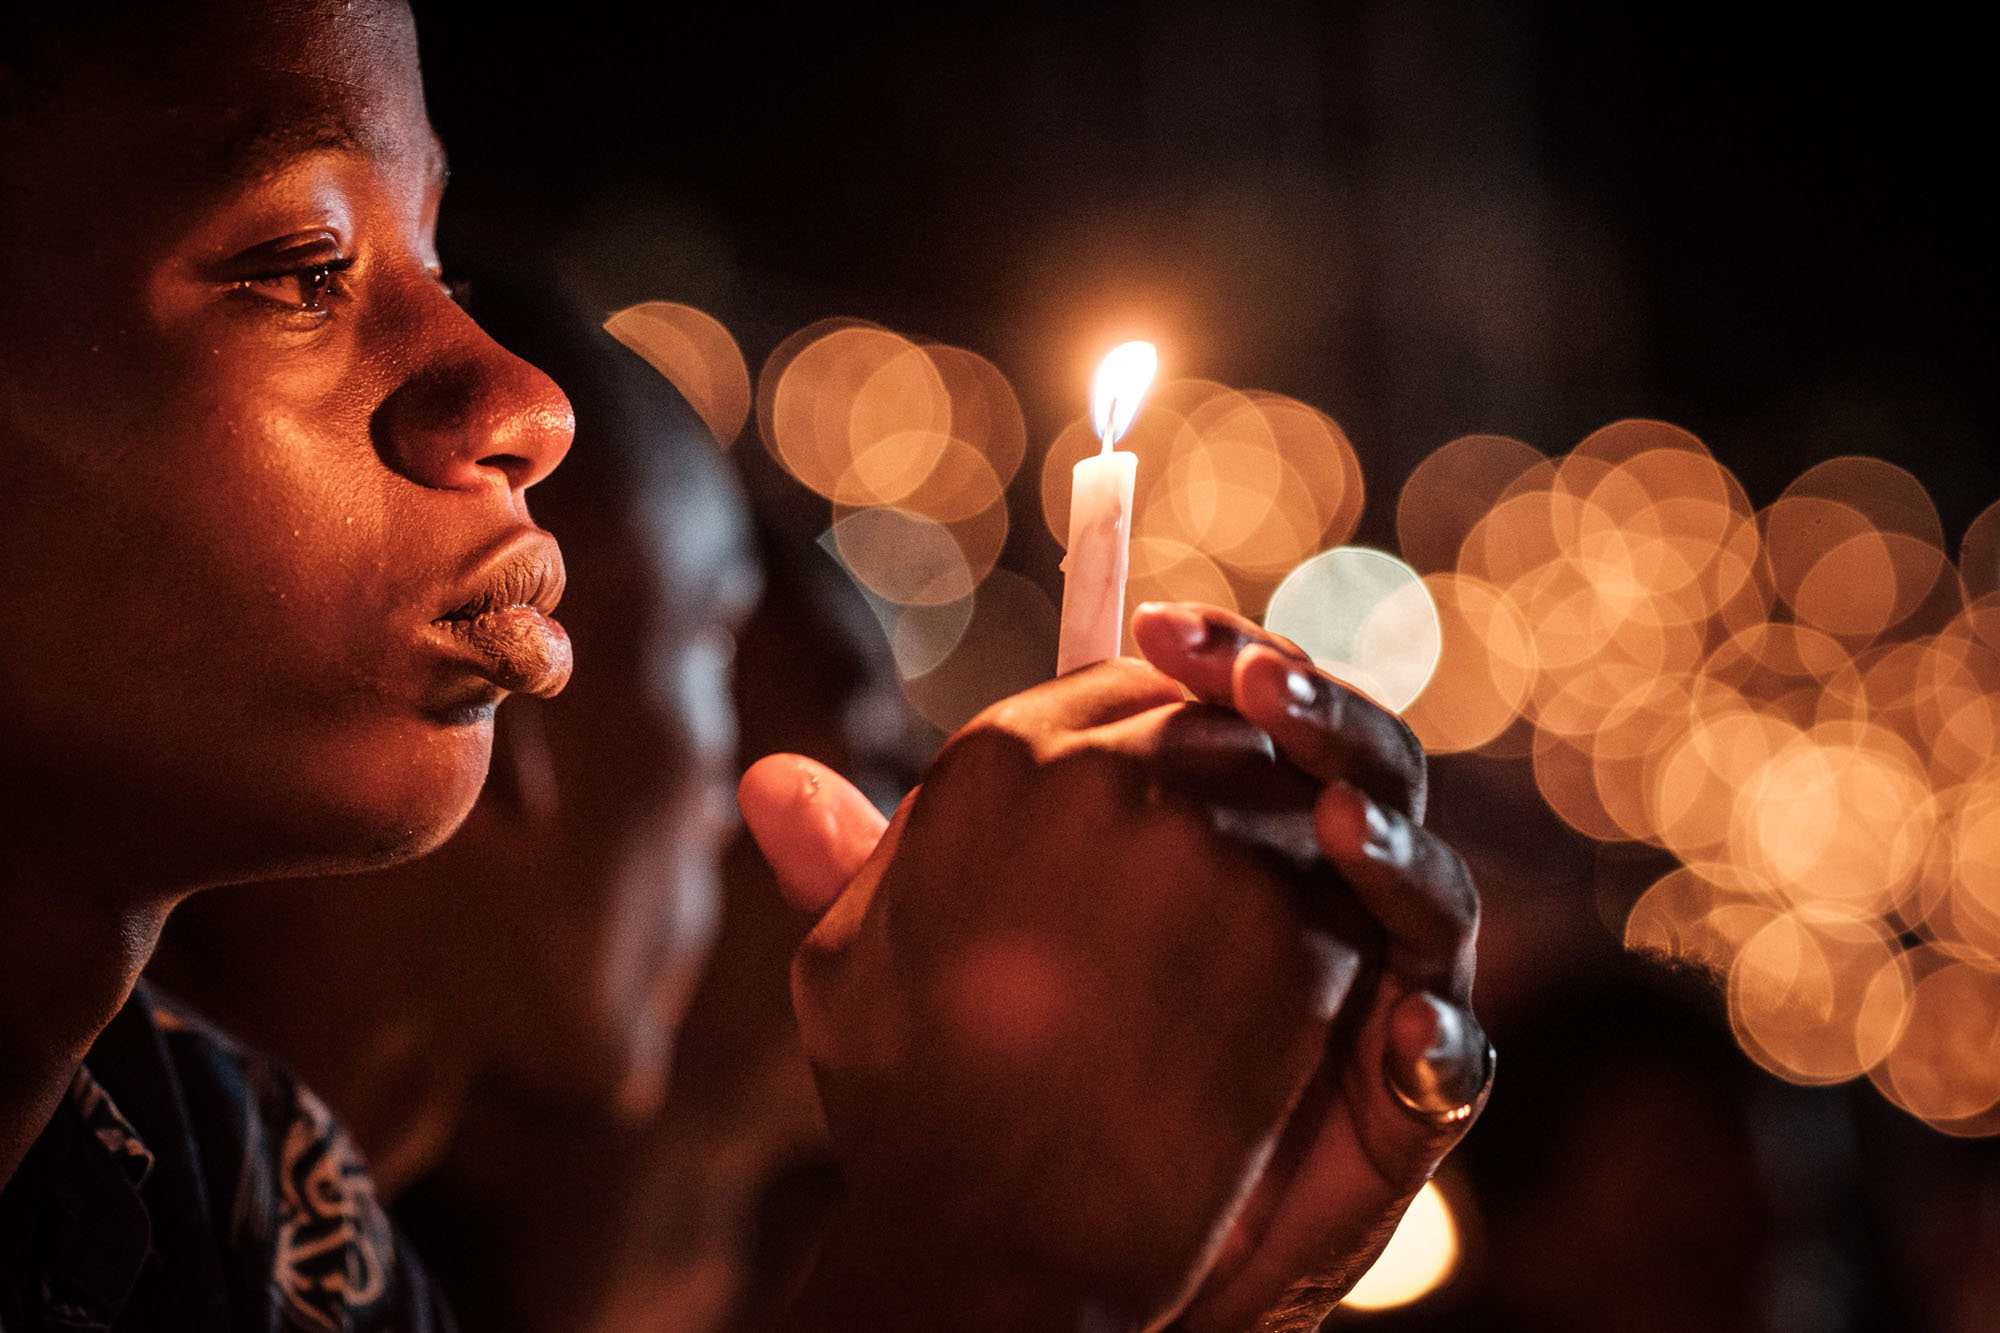 #Kwibuka25: African Development Bank marks the 25th commemoration of the Genocide against the Tutsi in Rwanda